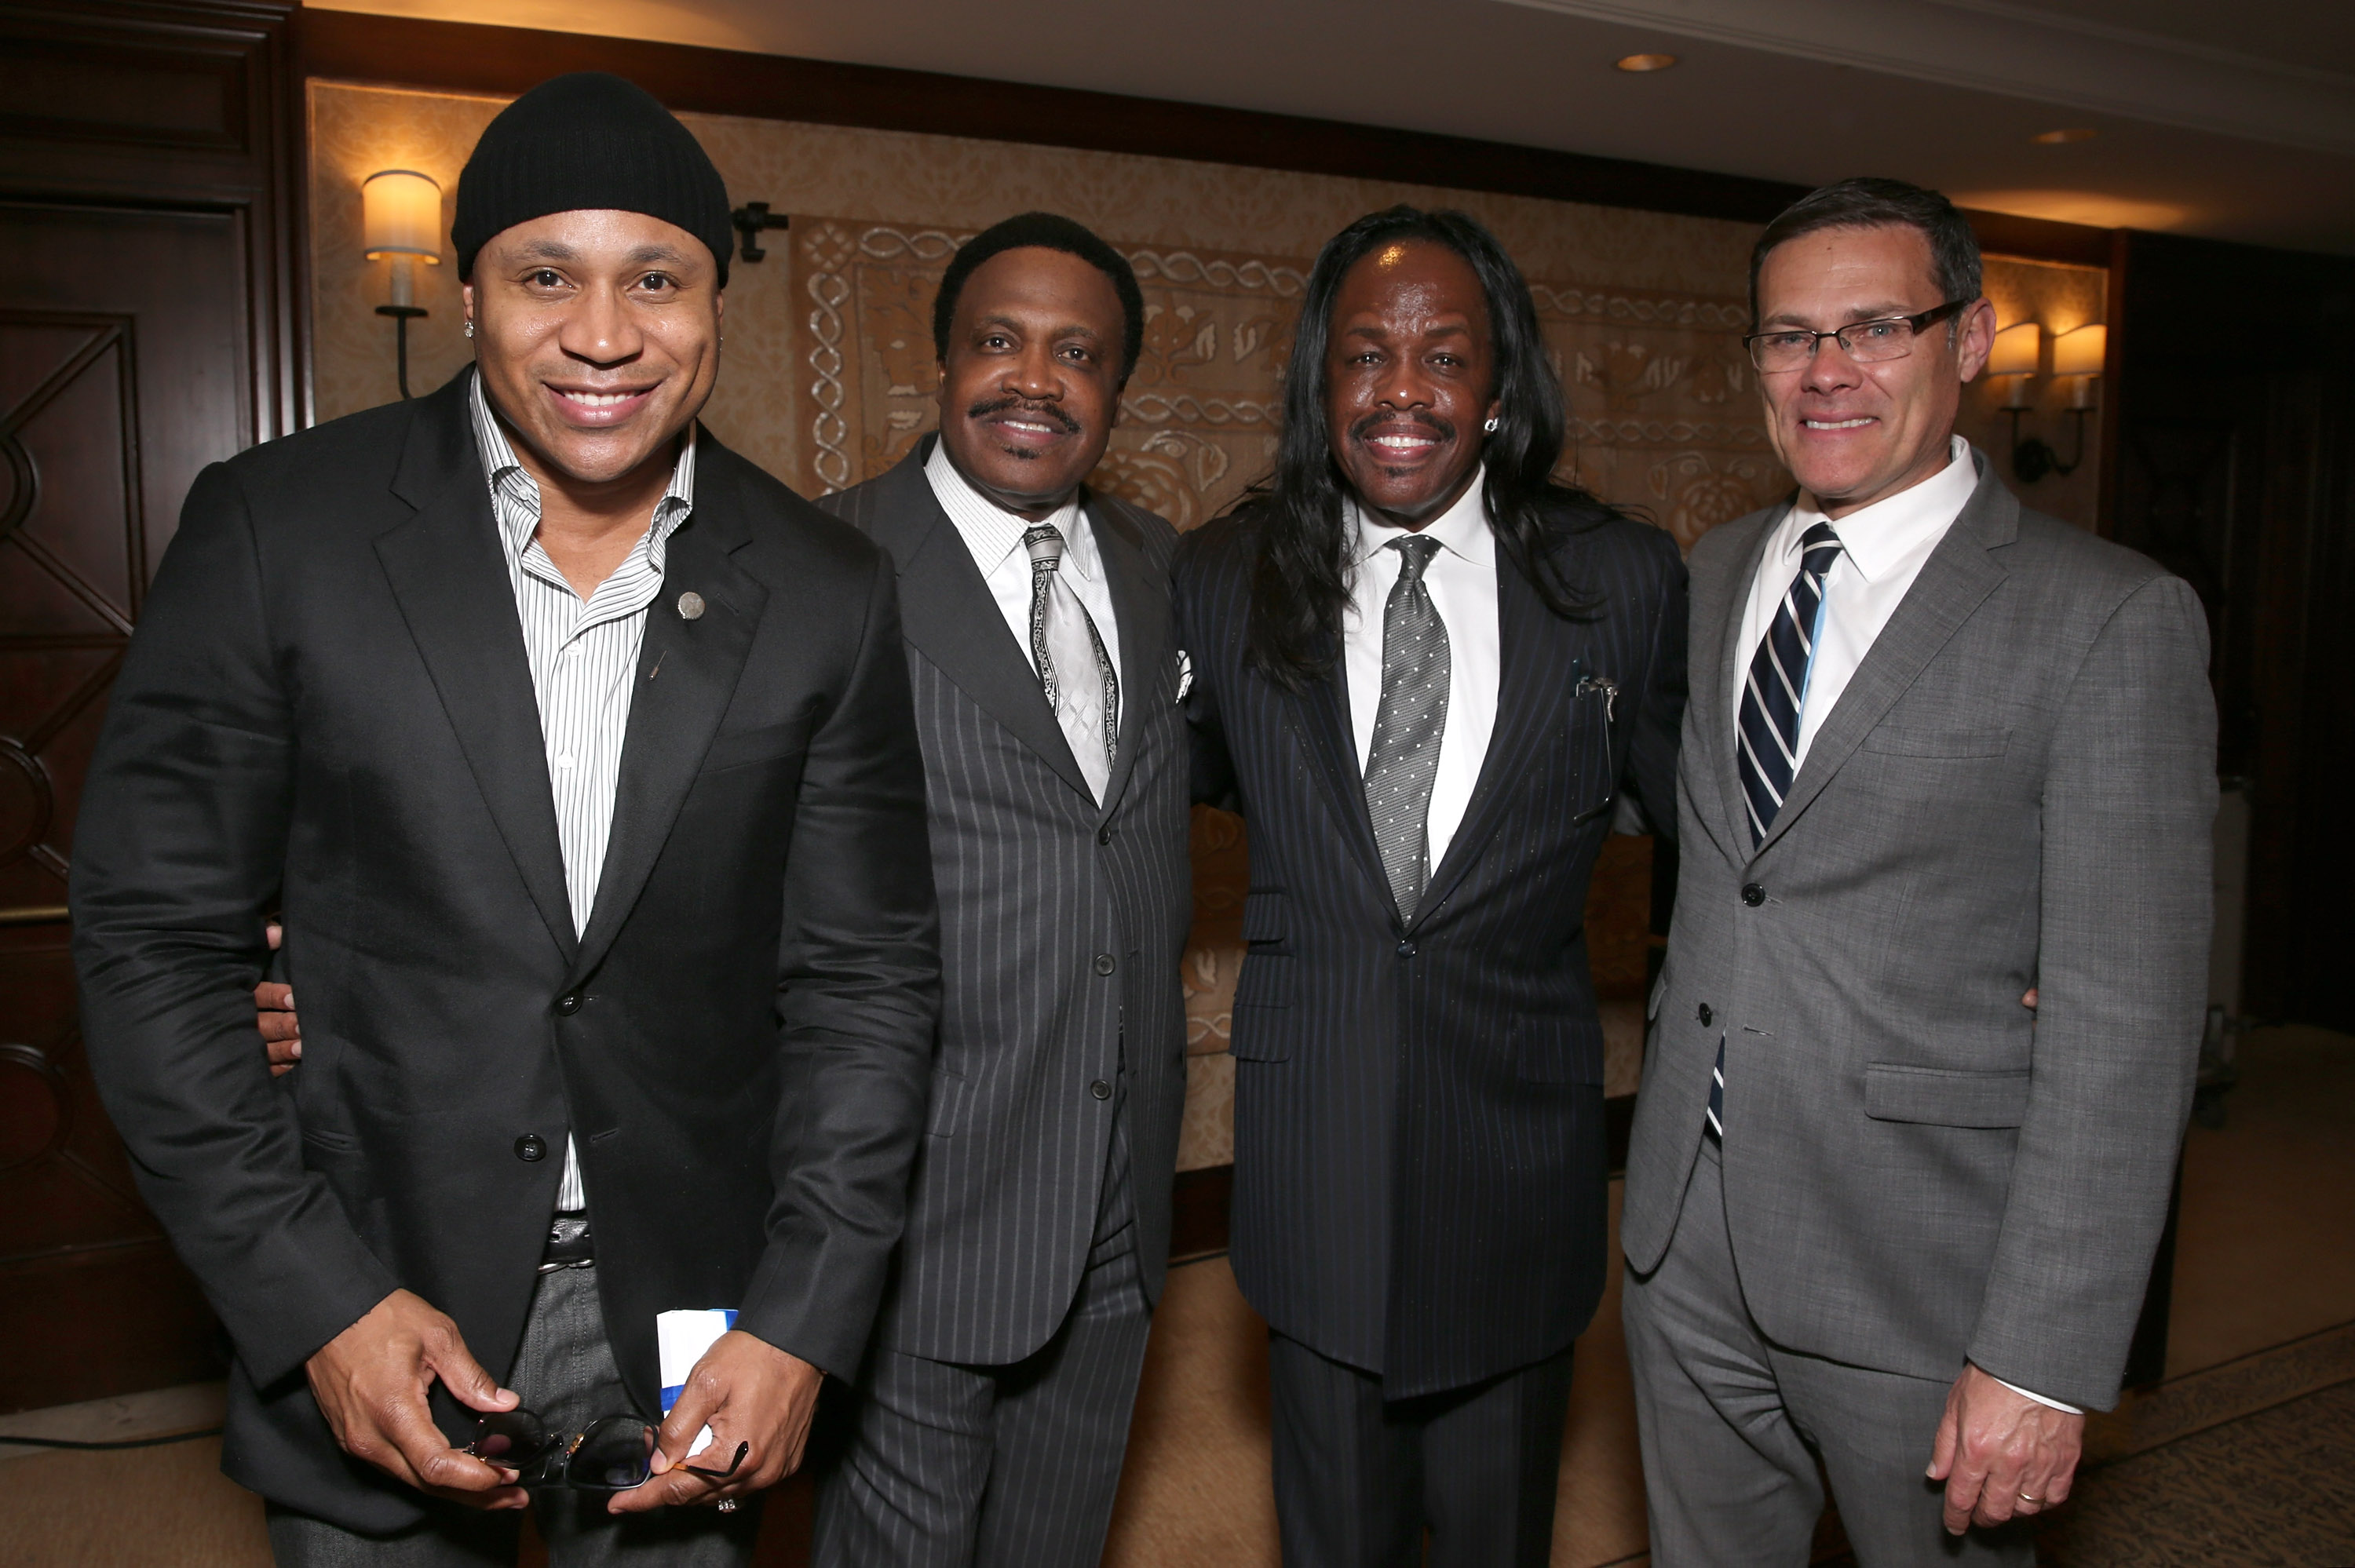 """BEVERLY HILLS, CA - MAY 18: LL Cool J, Dr. Kenneth C. Ulmer, Verdine White and Consul General of Isreal David Siegel attend the The Ulmer Institute Launch Celebration at Montage Beverly Hills on May 18, 2016 in Beverly Hills, California. (Photo by Todd Williamson/Getty Images for The Ulmer Institute)"""